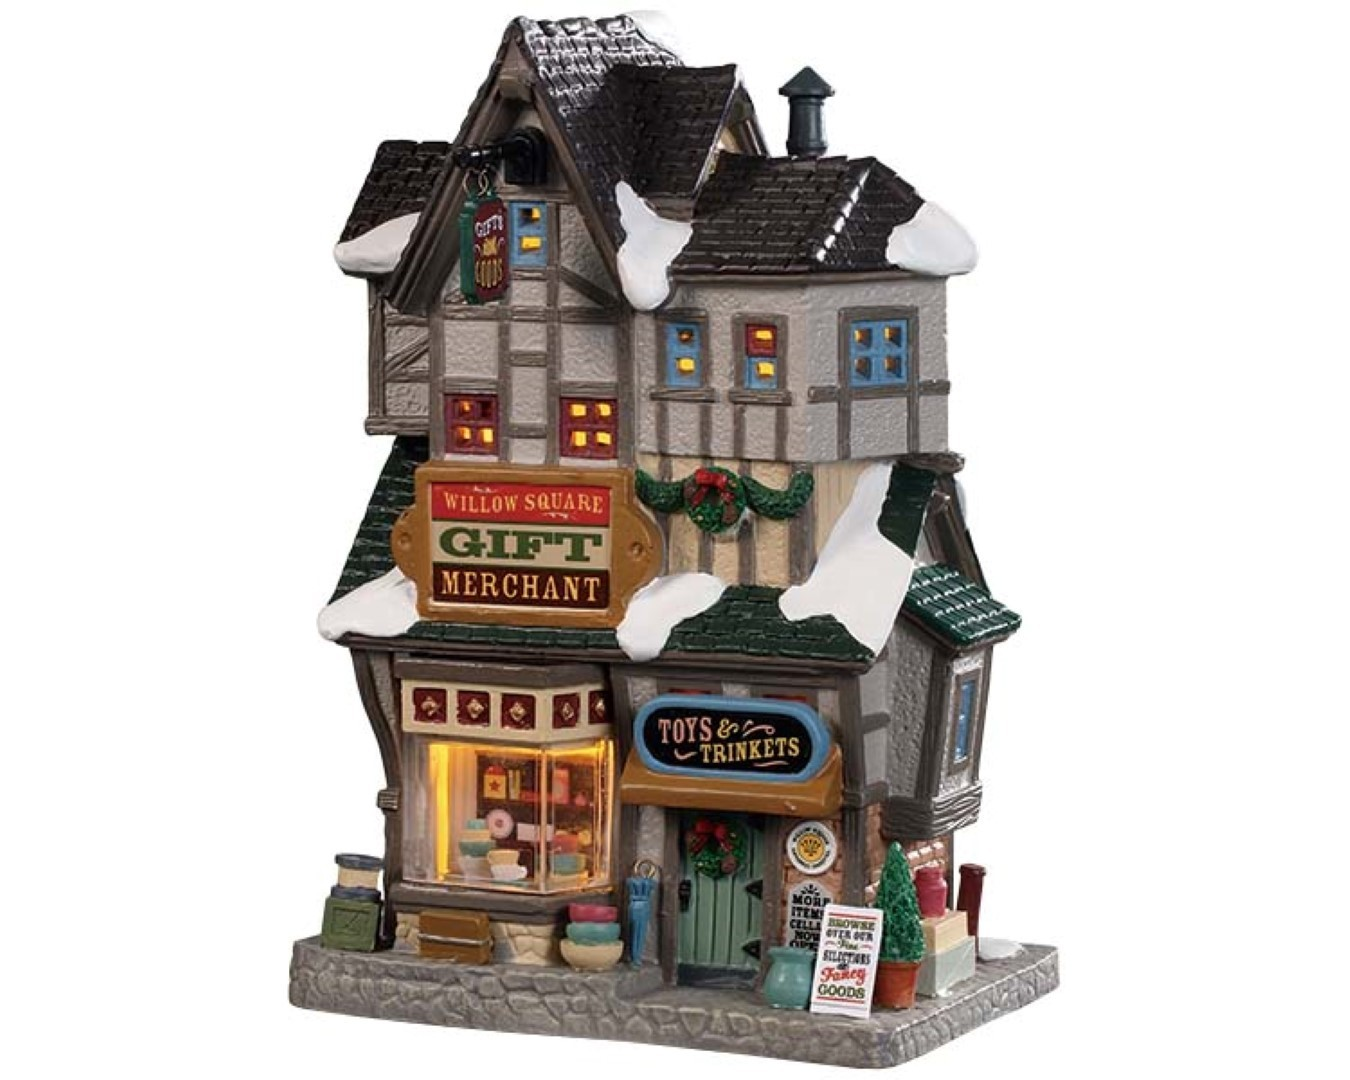 Willow square gift merchant LED